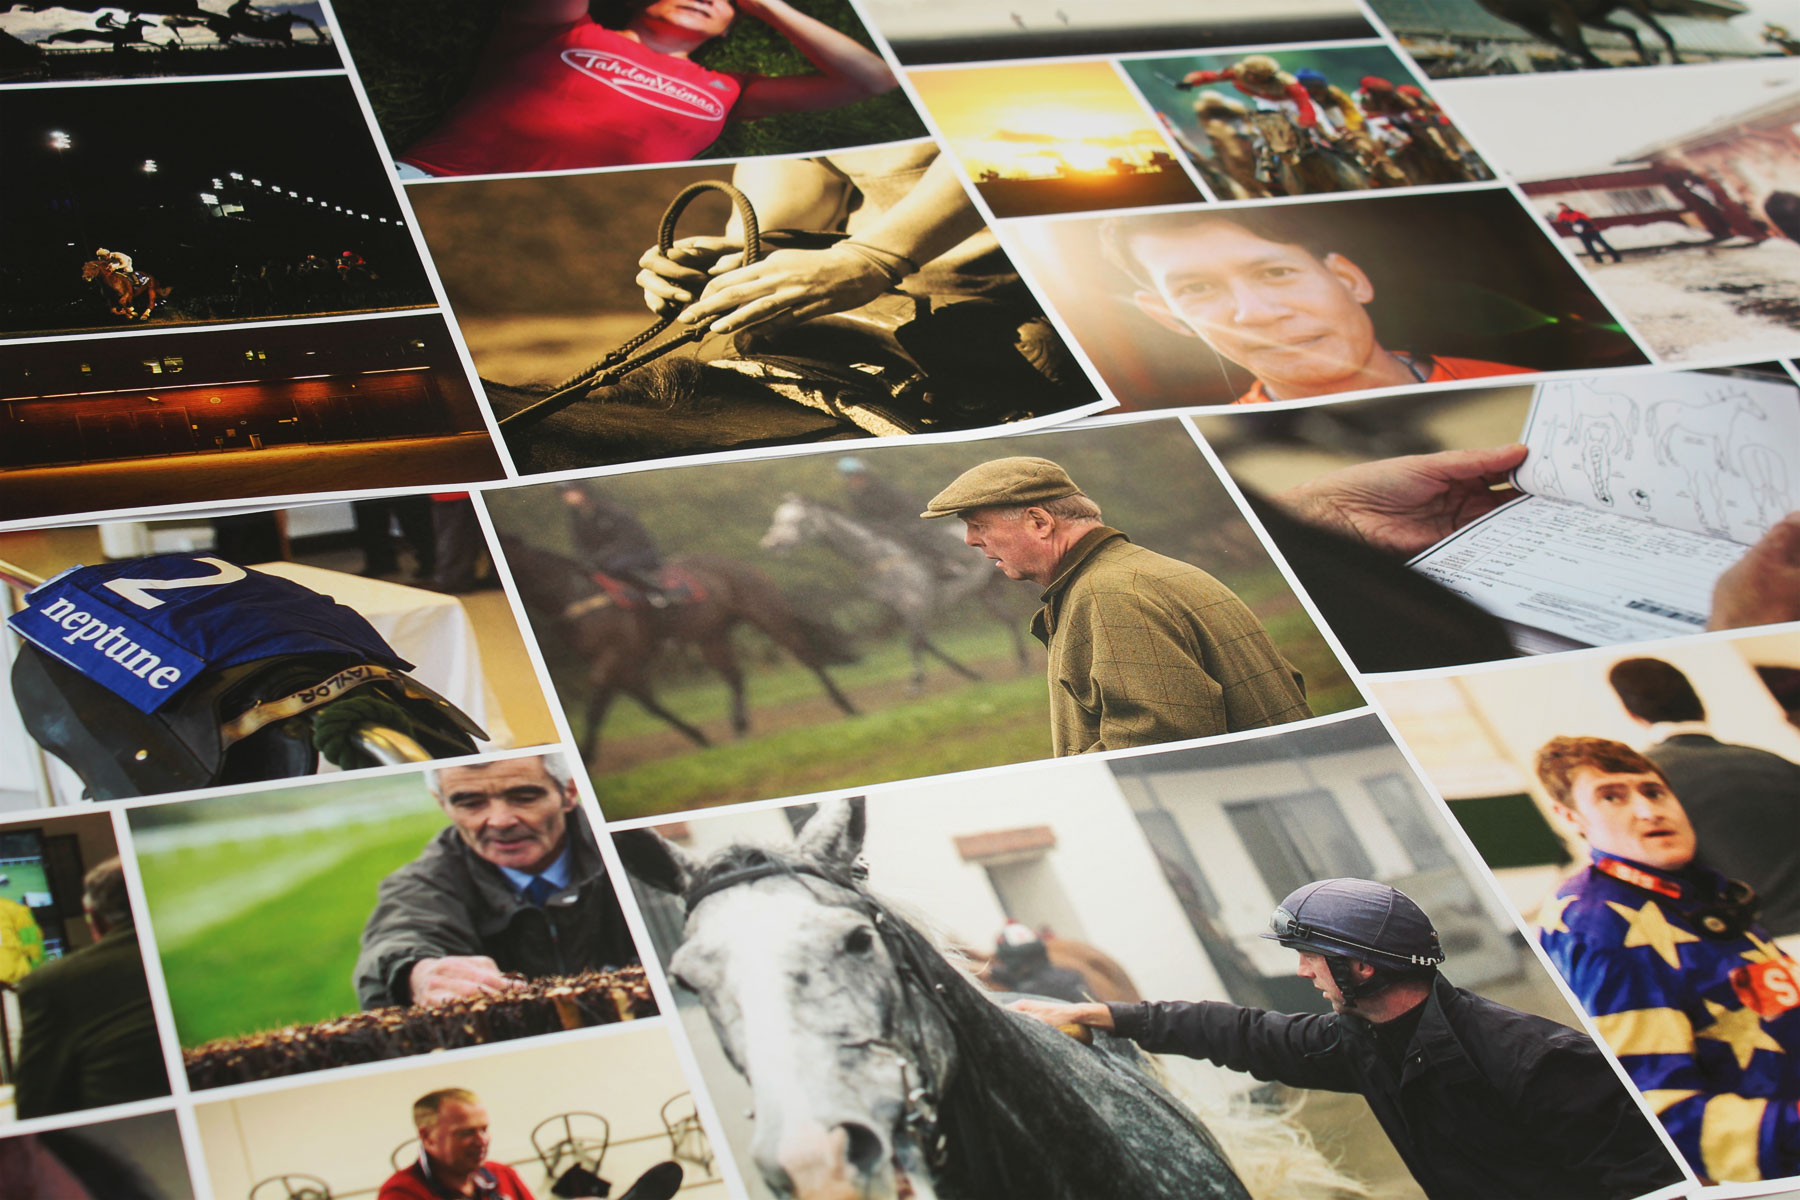 Custom photography was commissioned to get behind the scenes and document all aspects of racing, from mucking out to weighing in the jockeys.